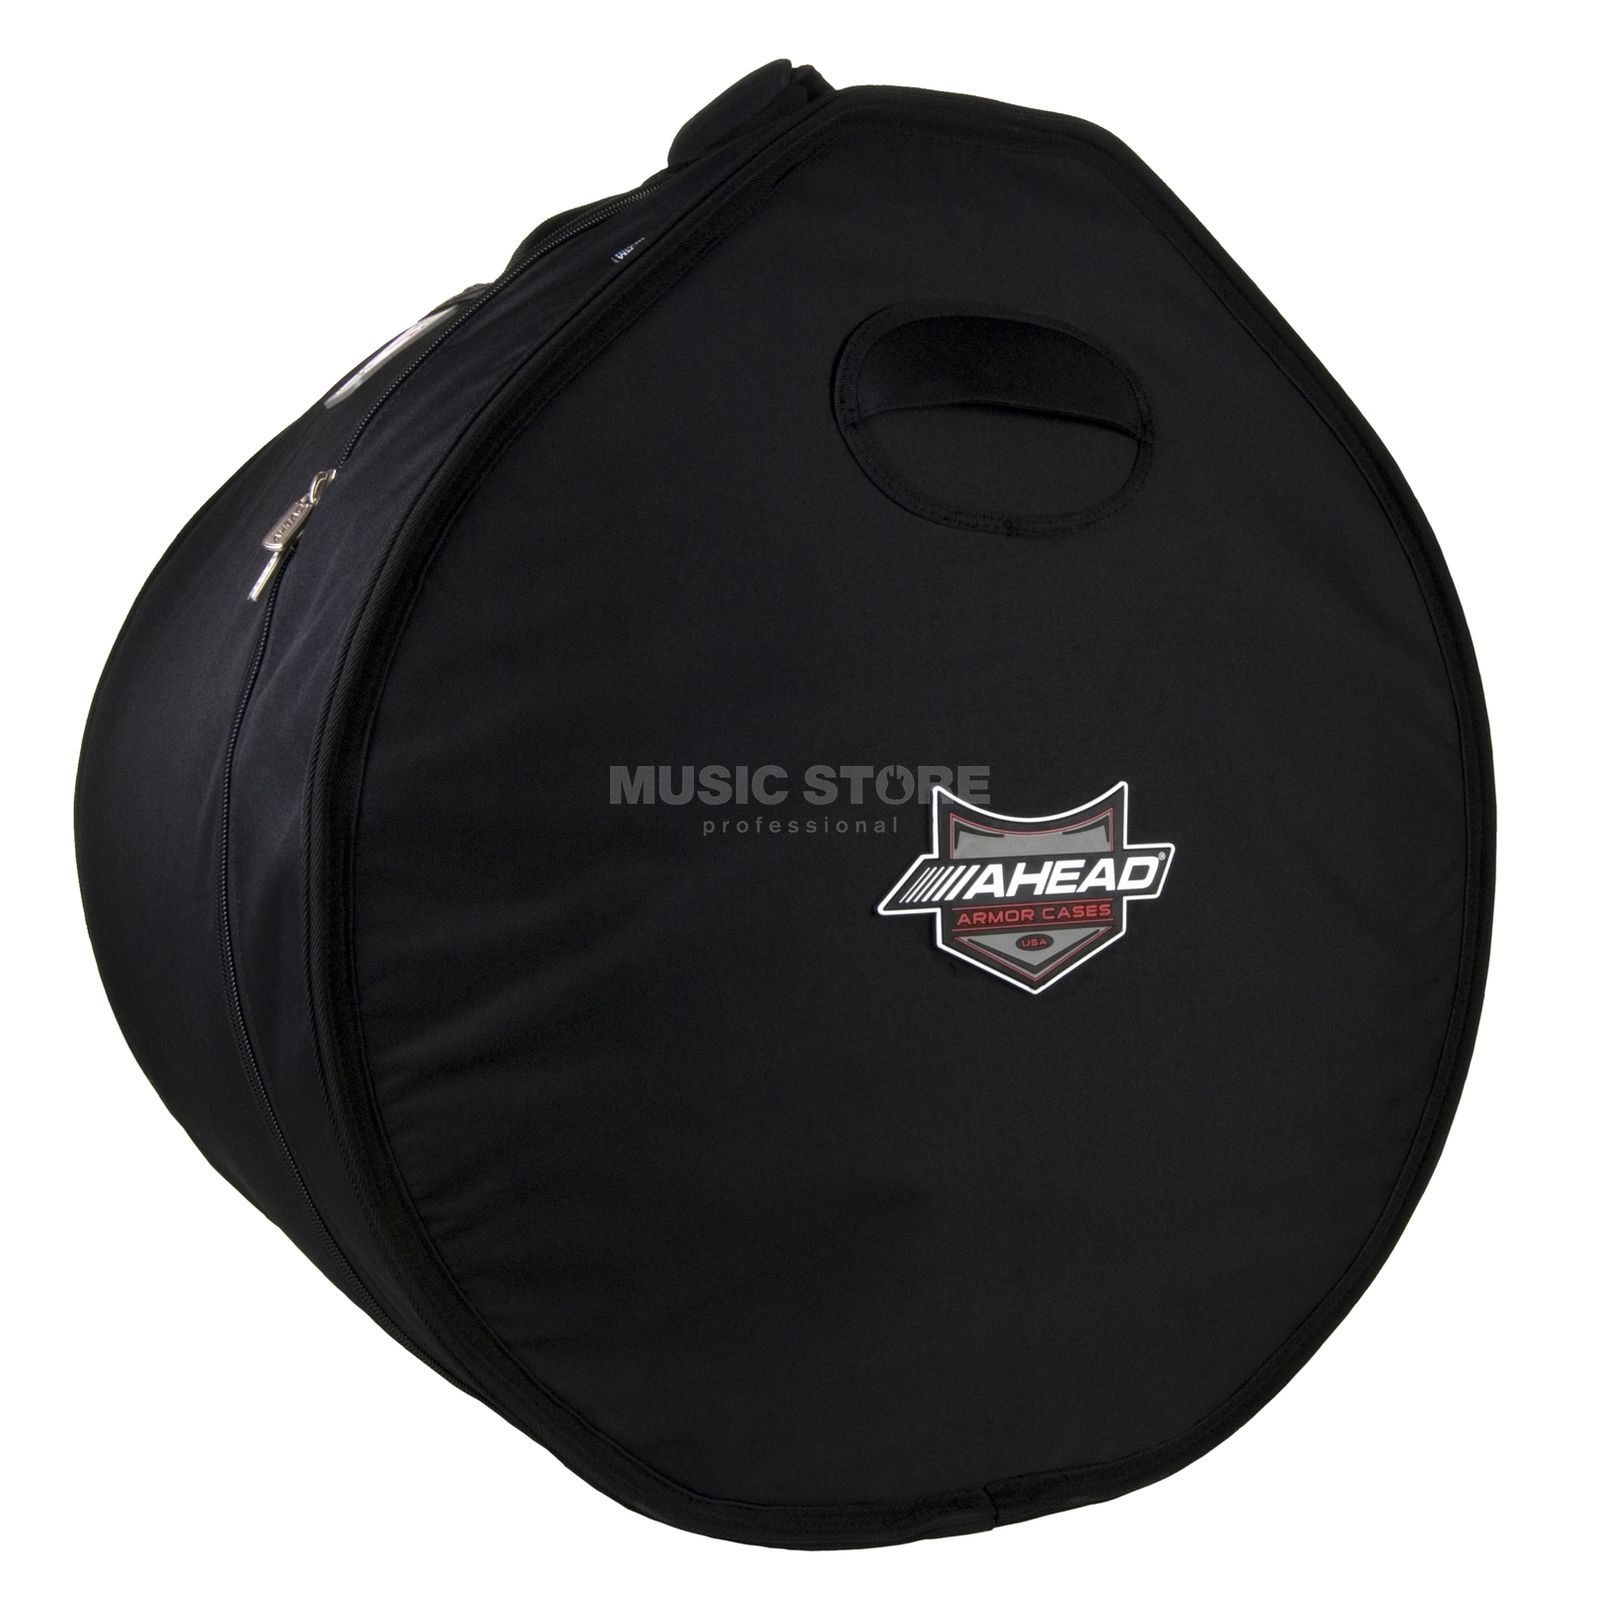 "Ahead Armor Cases BassDrum Bag 24""x14""  Product Image"